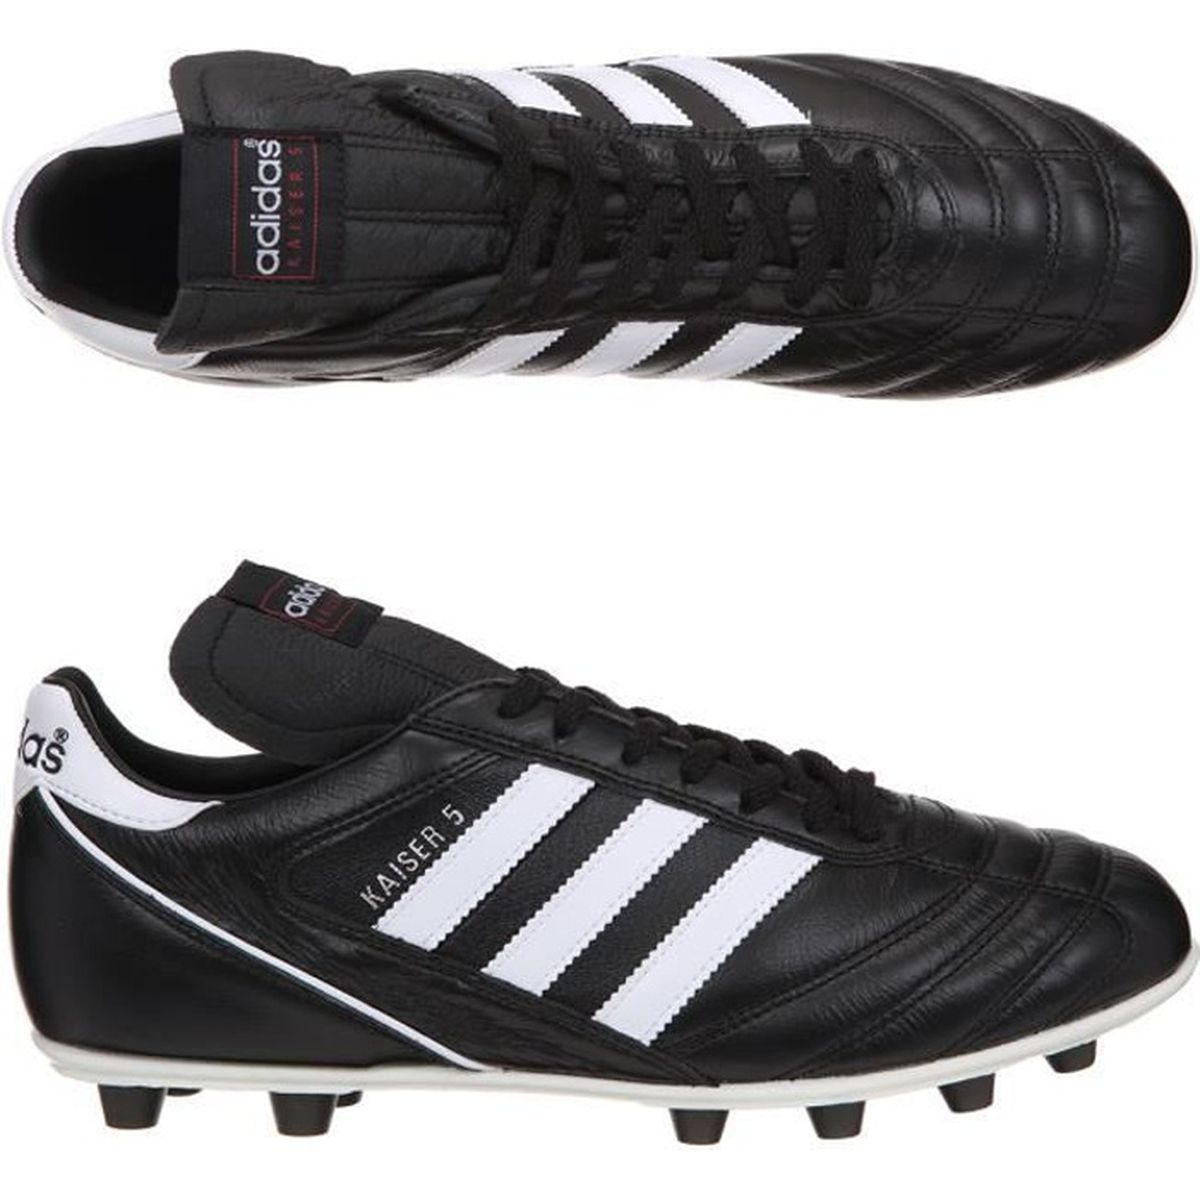 adidas chaussures football kaiser 5 homme prix pas cher cdiscount. Black Bedroom Furniture Sets. Home Design Ideas